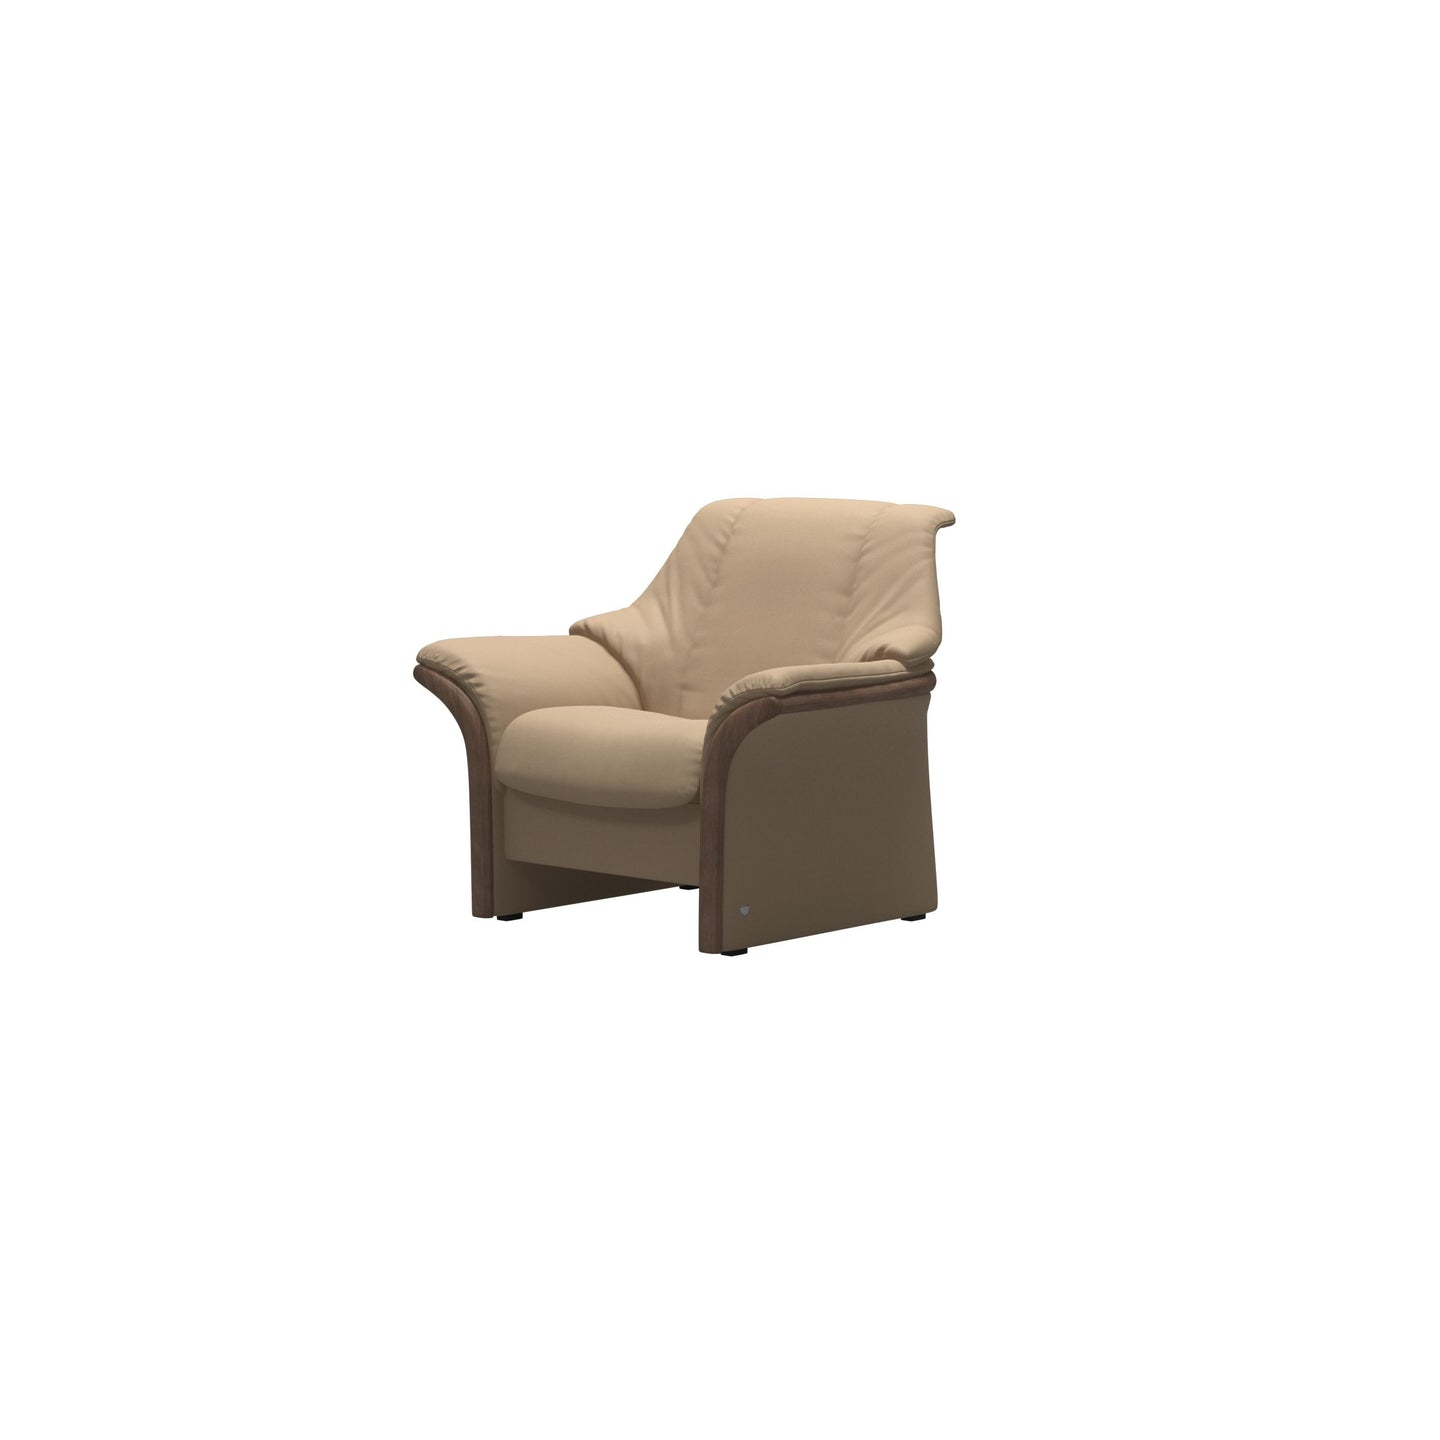 Stressless® Eldorado (M) chair Low back